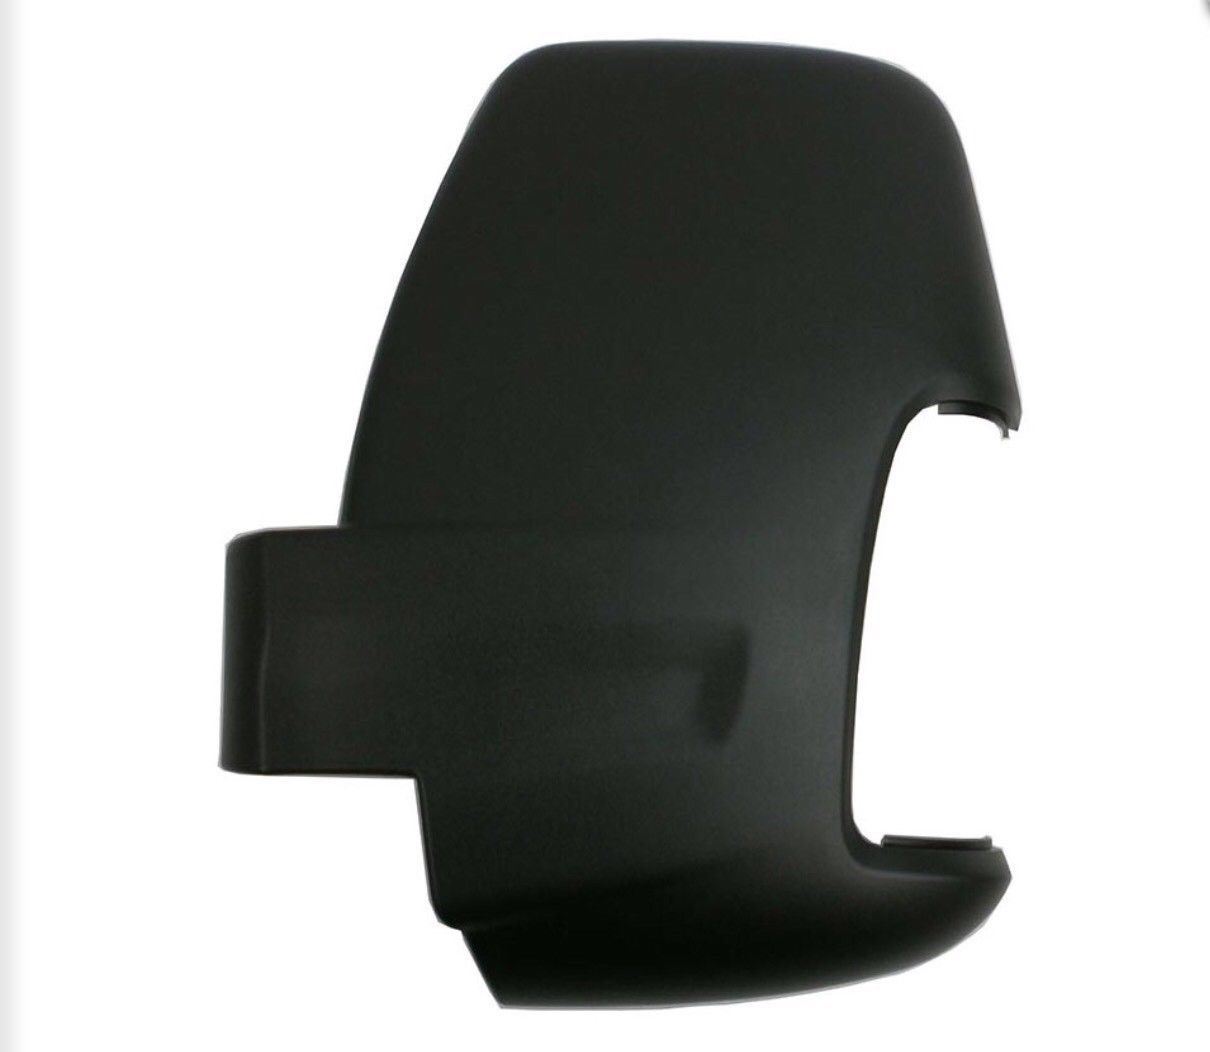 Ford Transit MK8 Door Wing Mirror Black Cover Casing Left NS 2014 2017 LL01-60-016 Black cover L